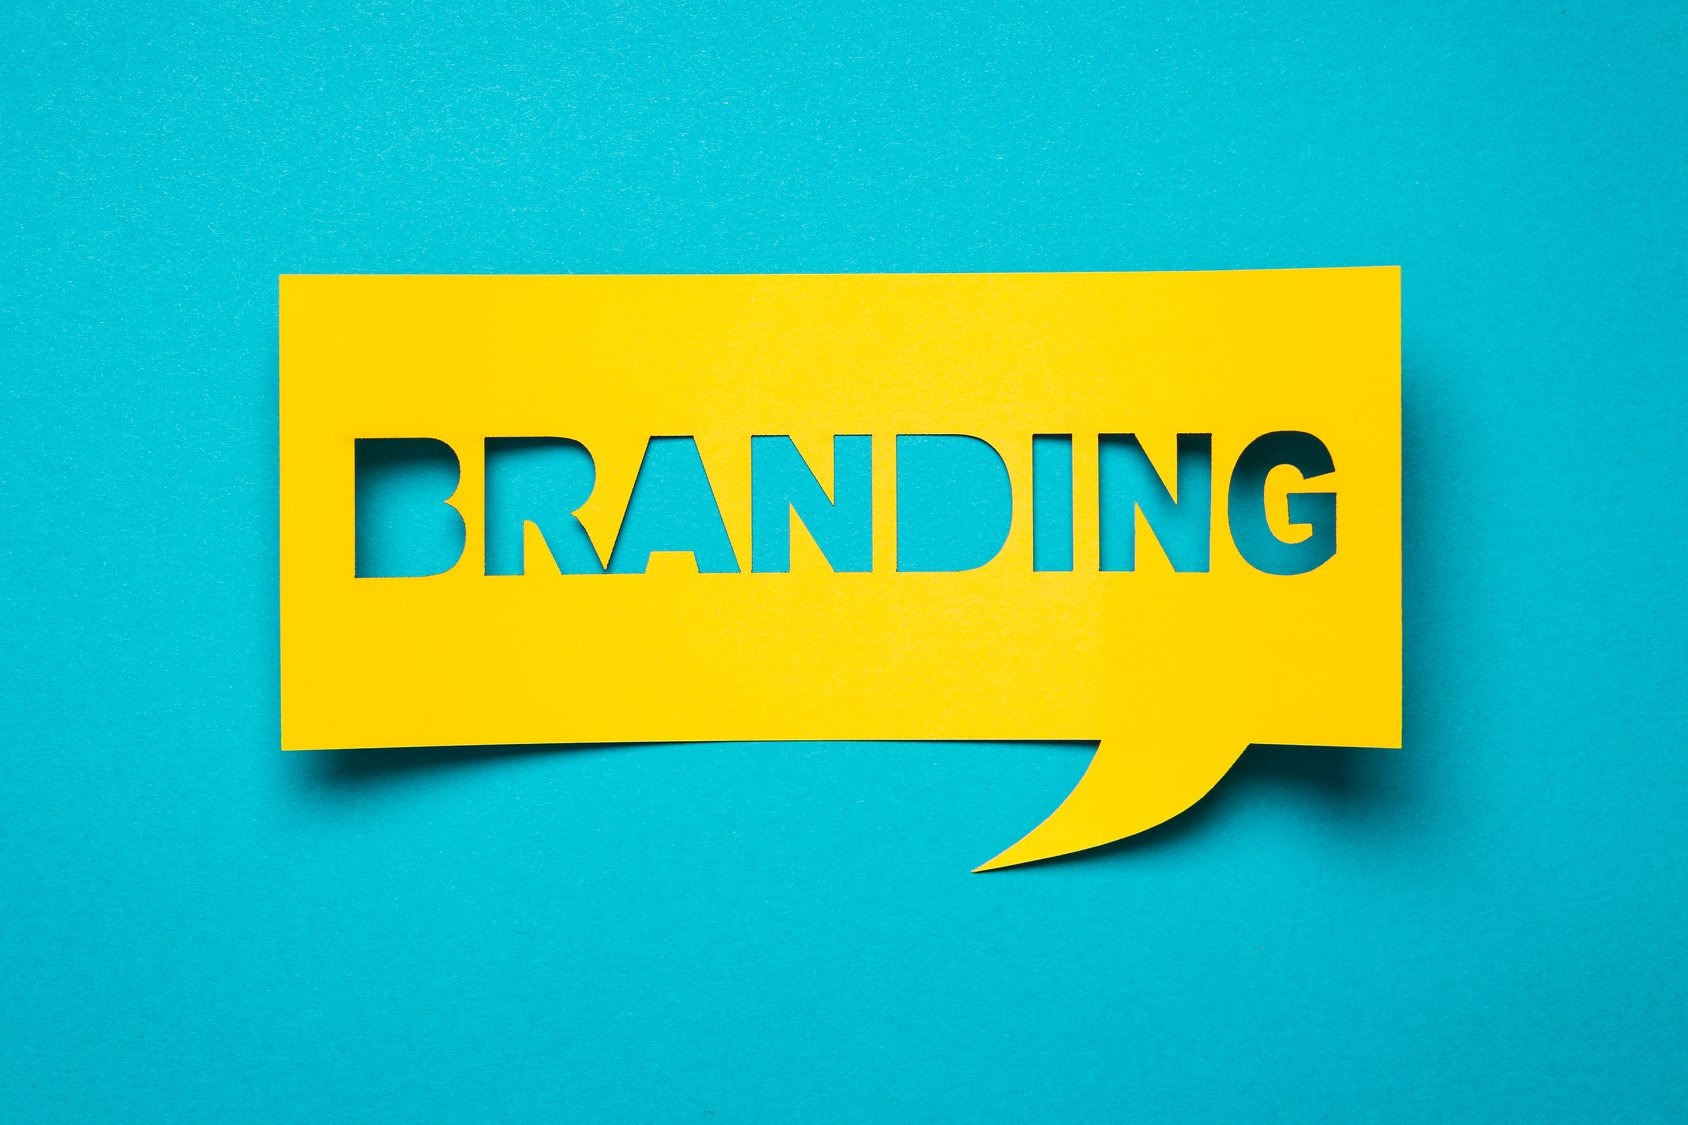 Getting Your Worth in Indian Rupees Through Branding